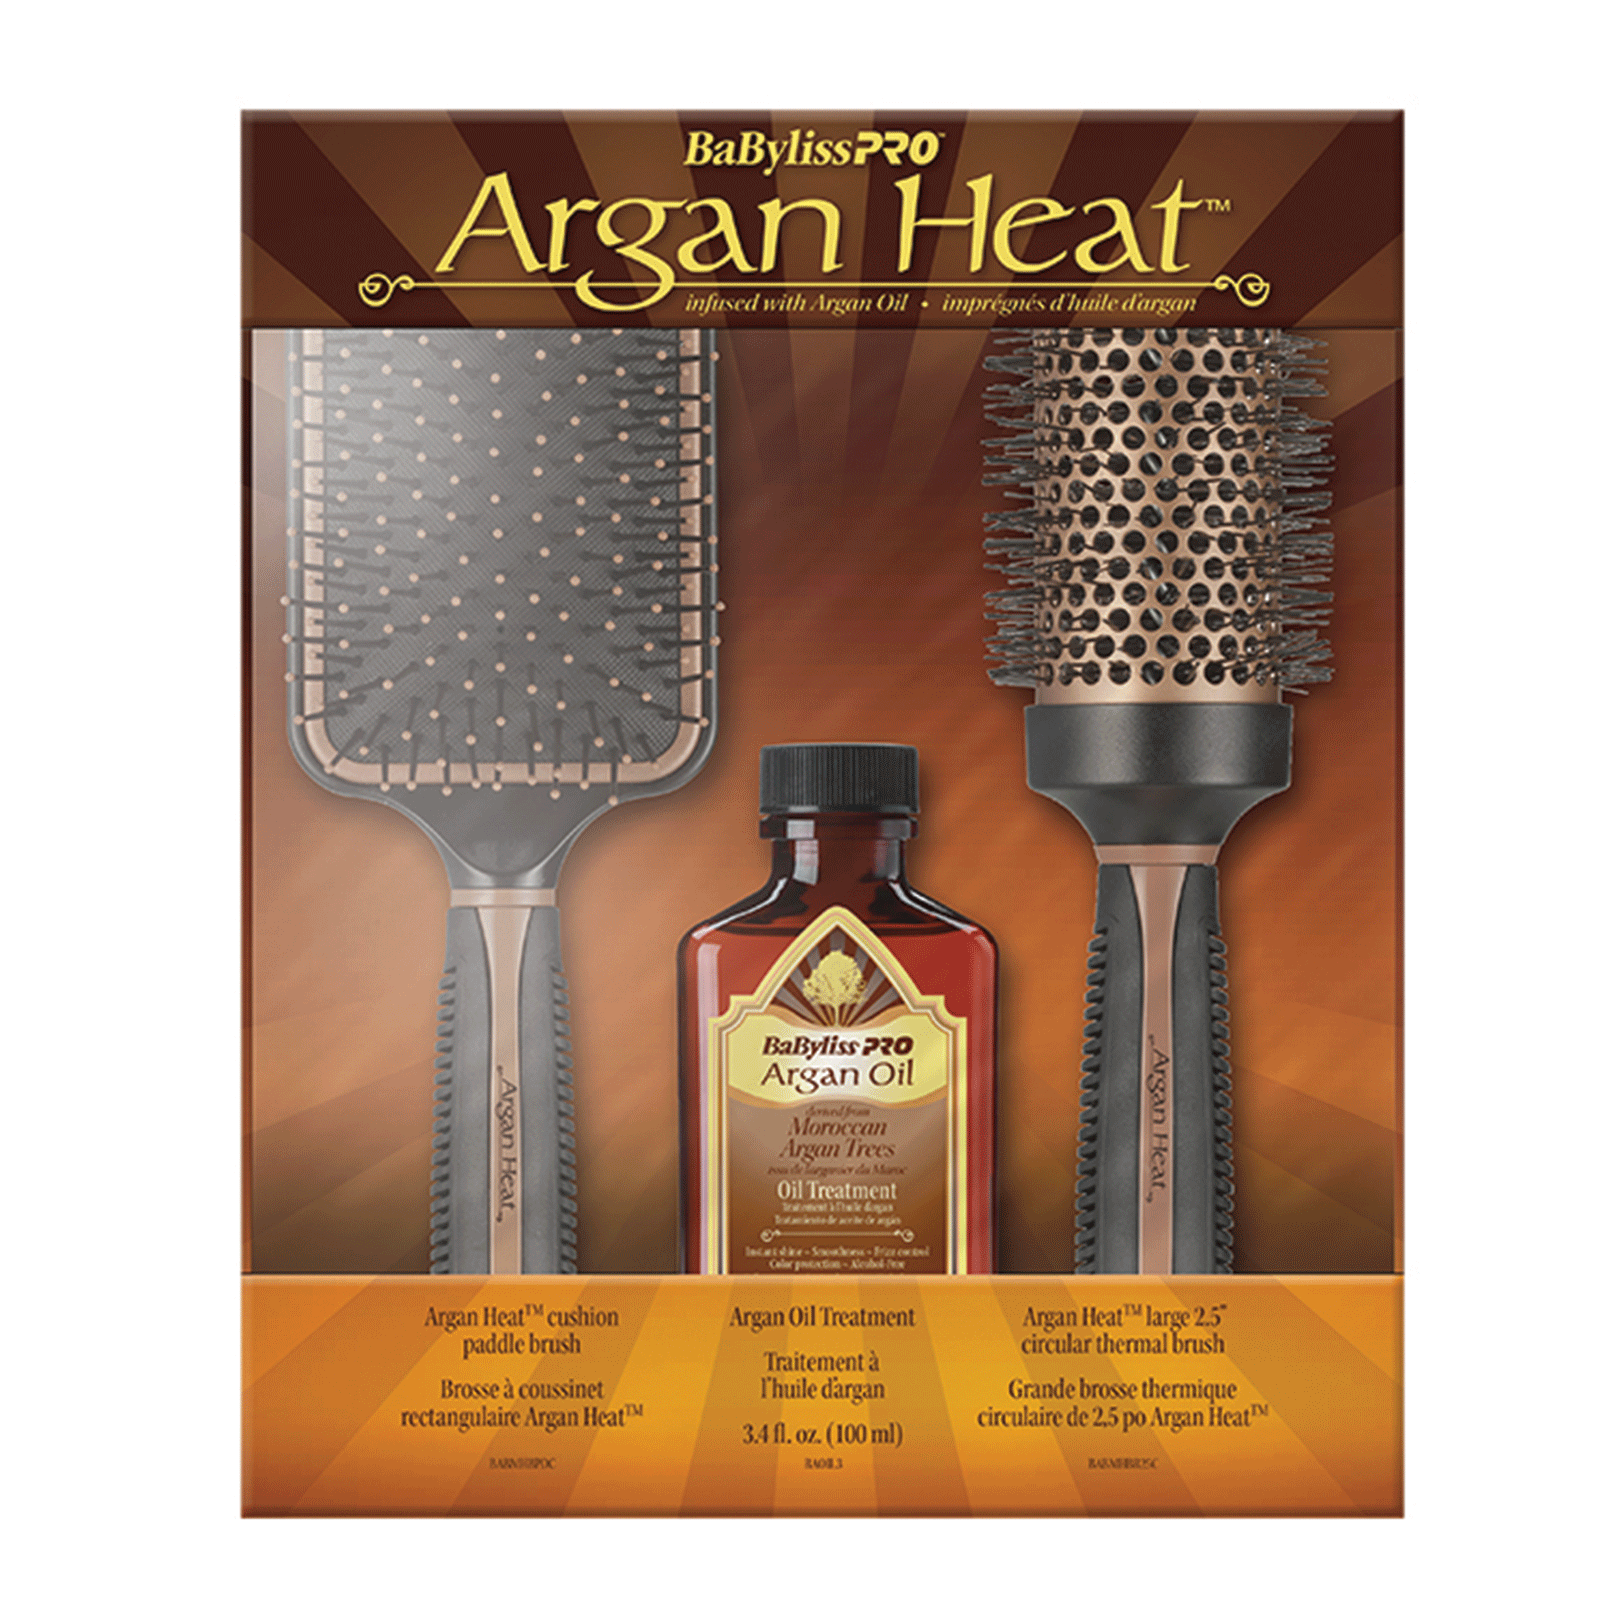 BaByliss Pro Argan Heat Paddle Brush, Thermal Brush & Oil Set * Select product